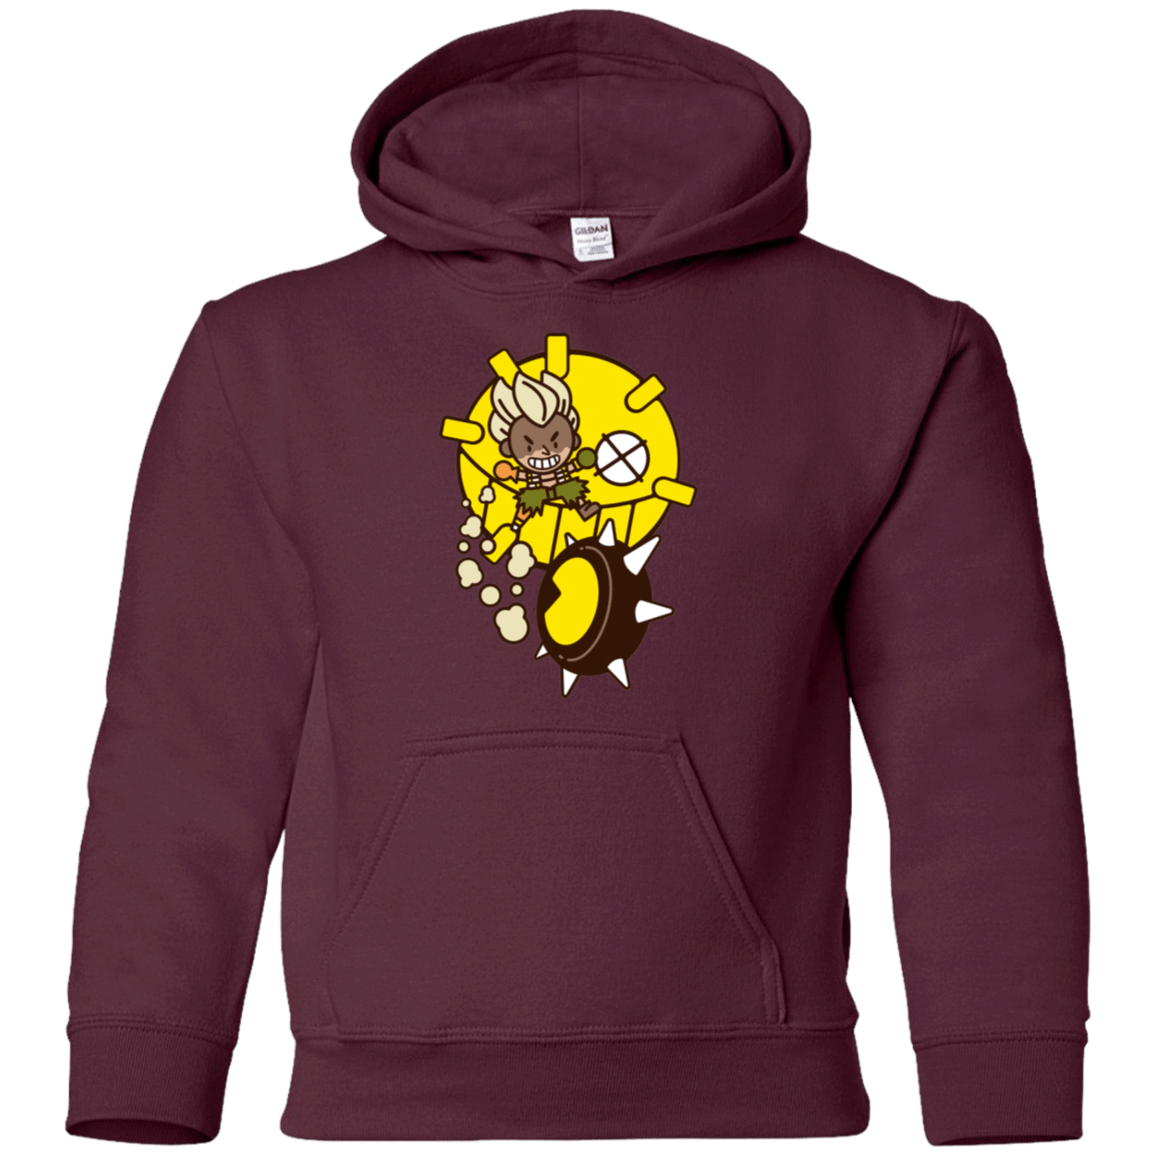 Sweatshirts Maroon / YS Fire in the Hole Youth Hoodie